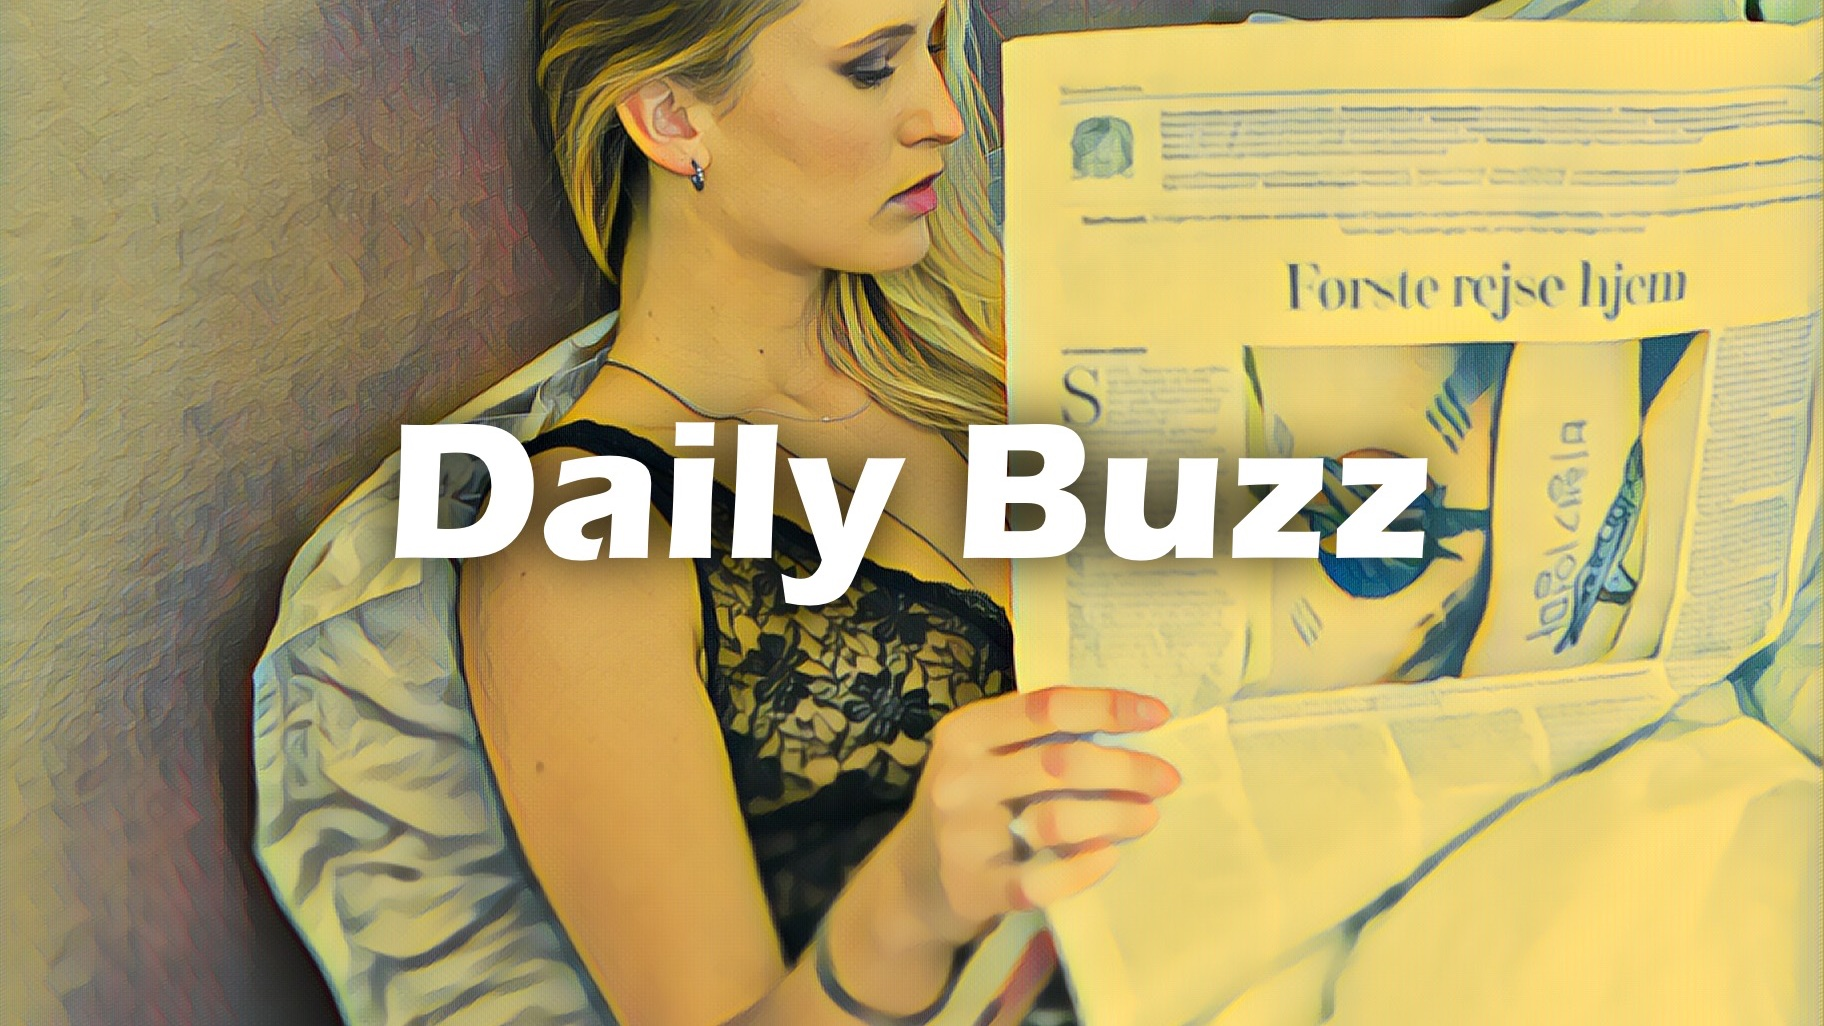 DailyBuzz Wednesday 4 July 2018